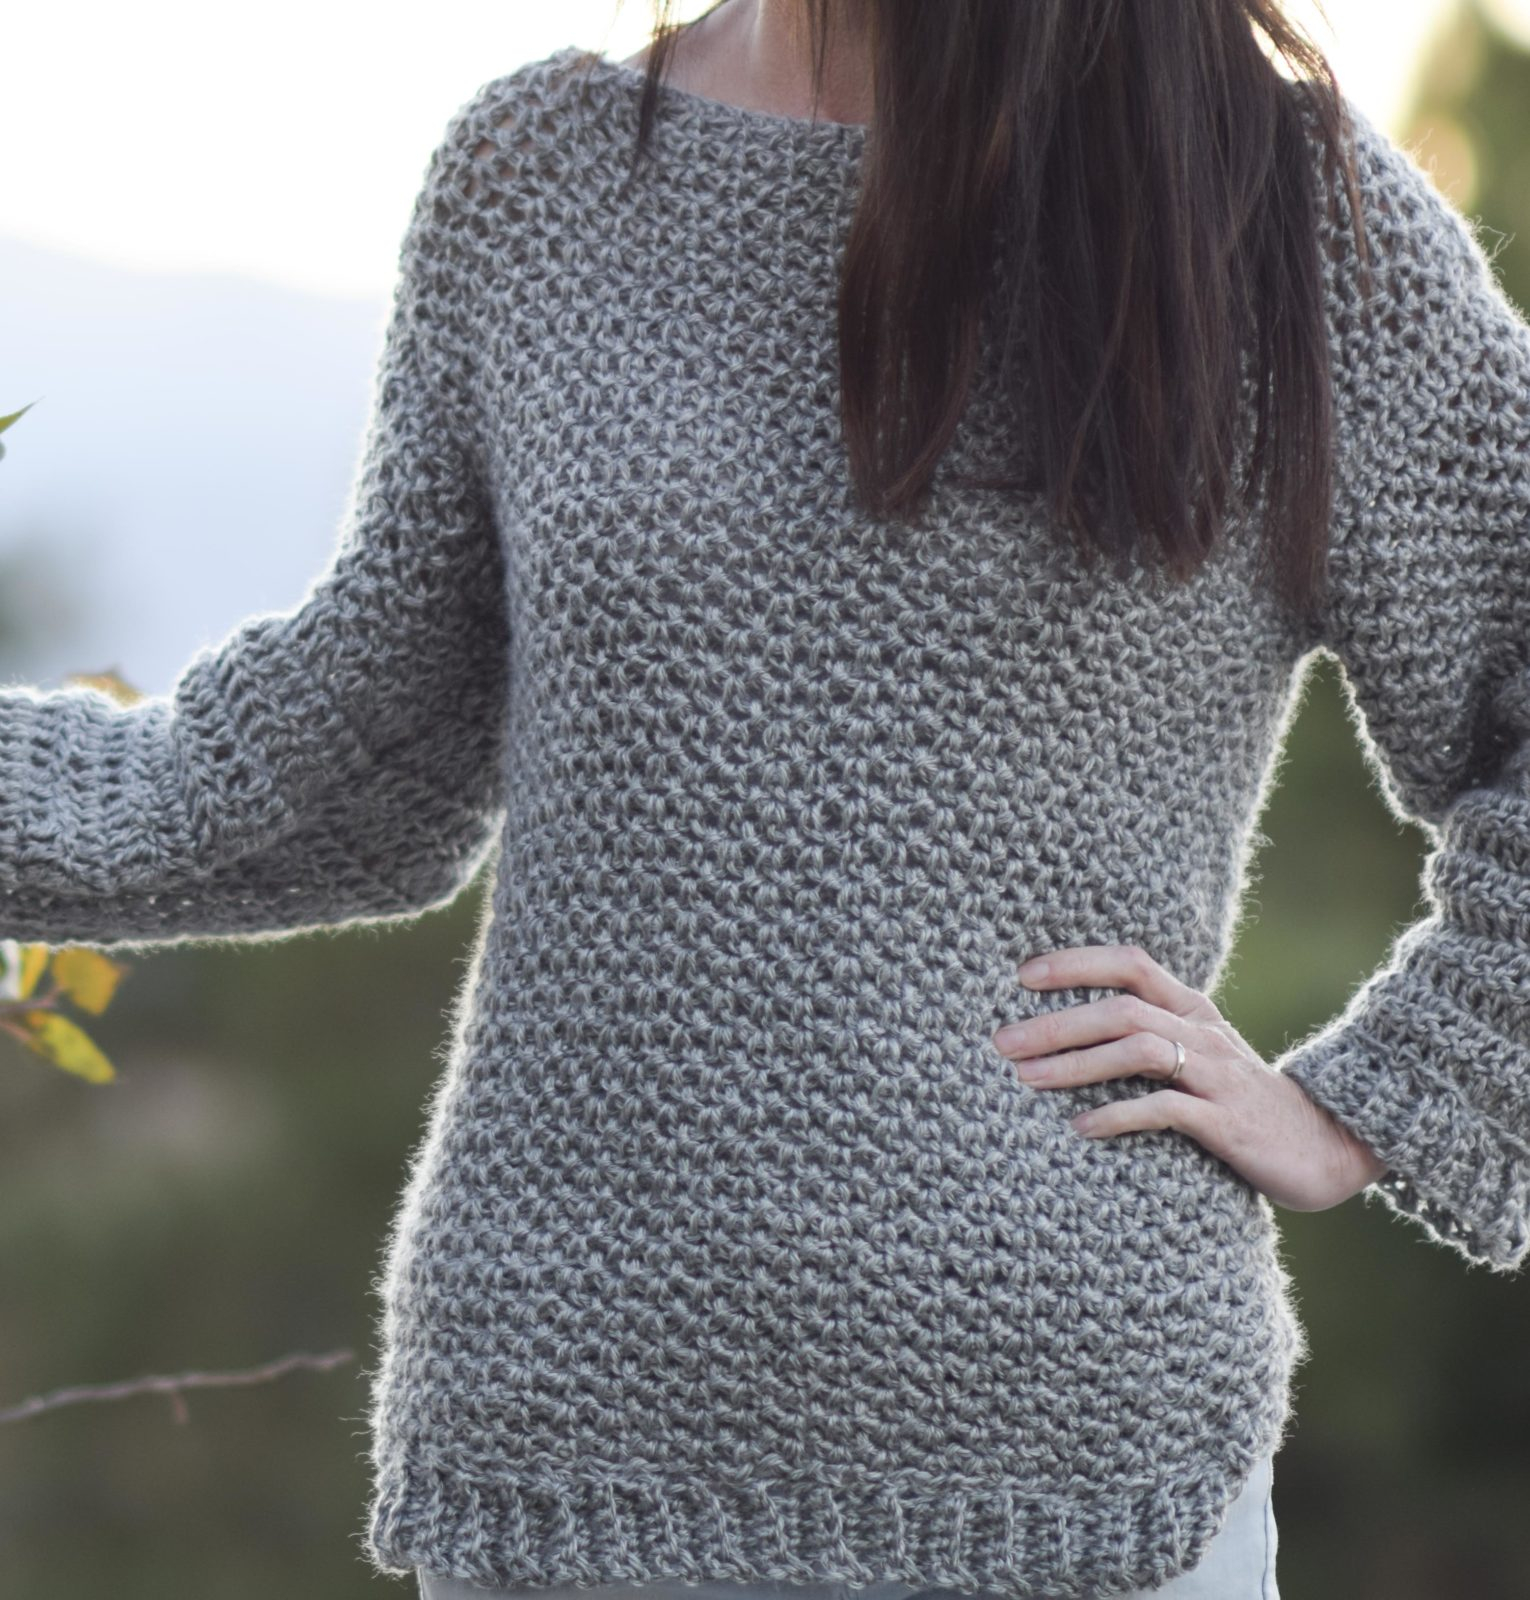 Simple Knit Sweater Pattern Free How To Make An Easy Crocheted Sweater Knit Like Mama In A Stitch